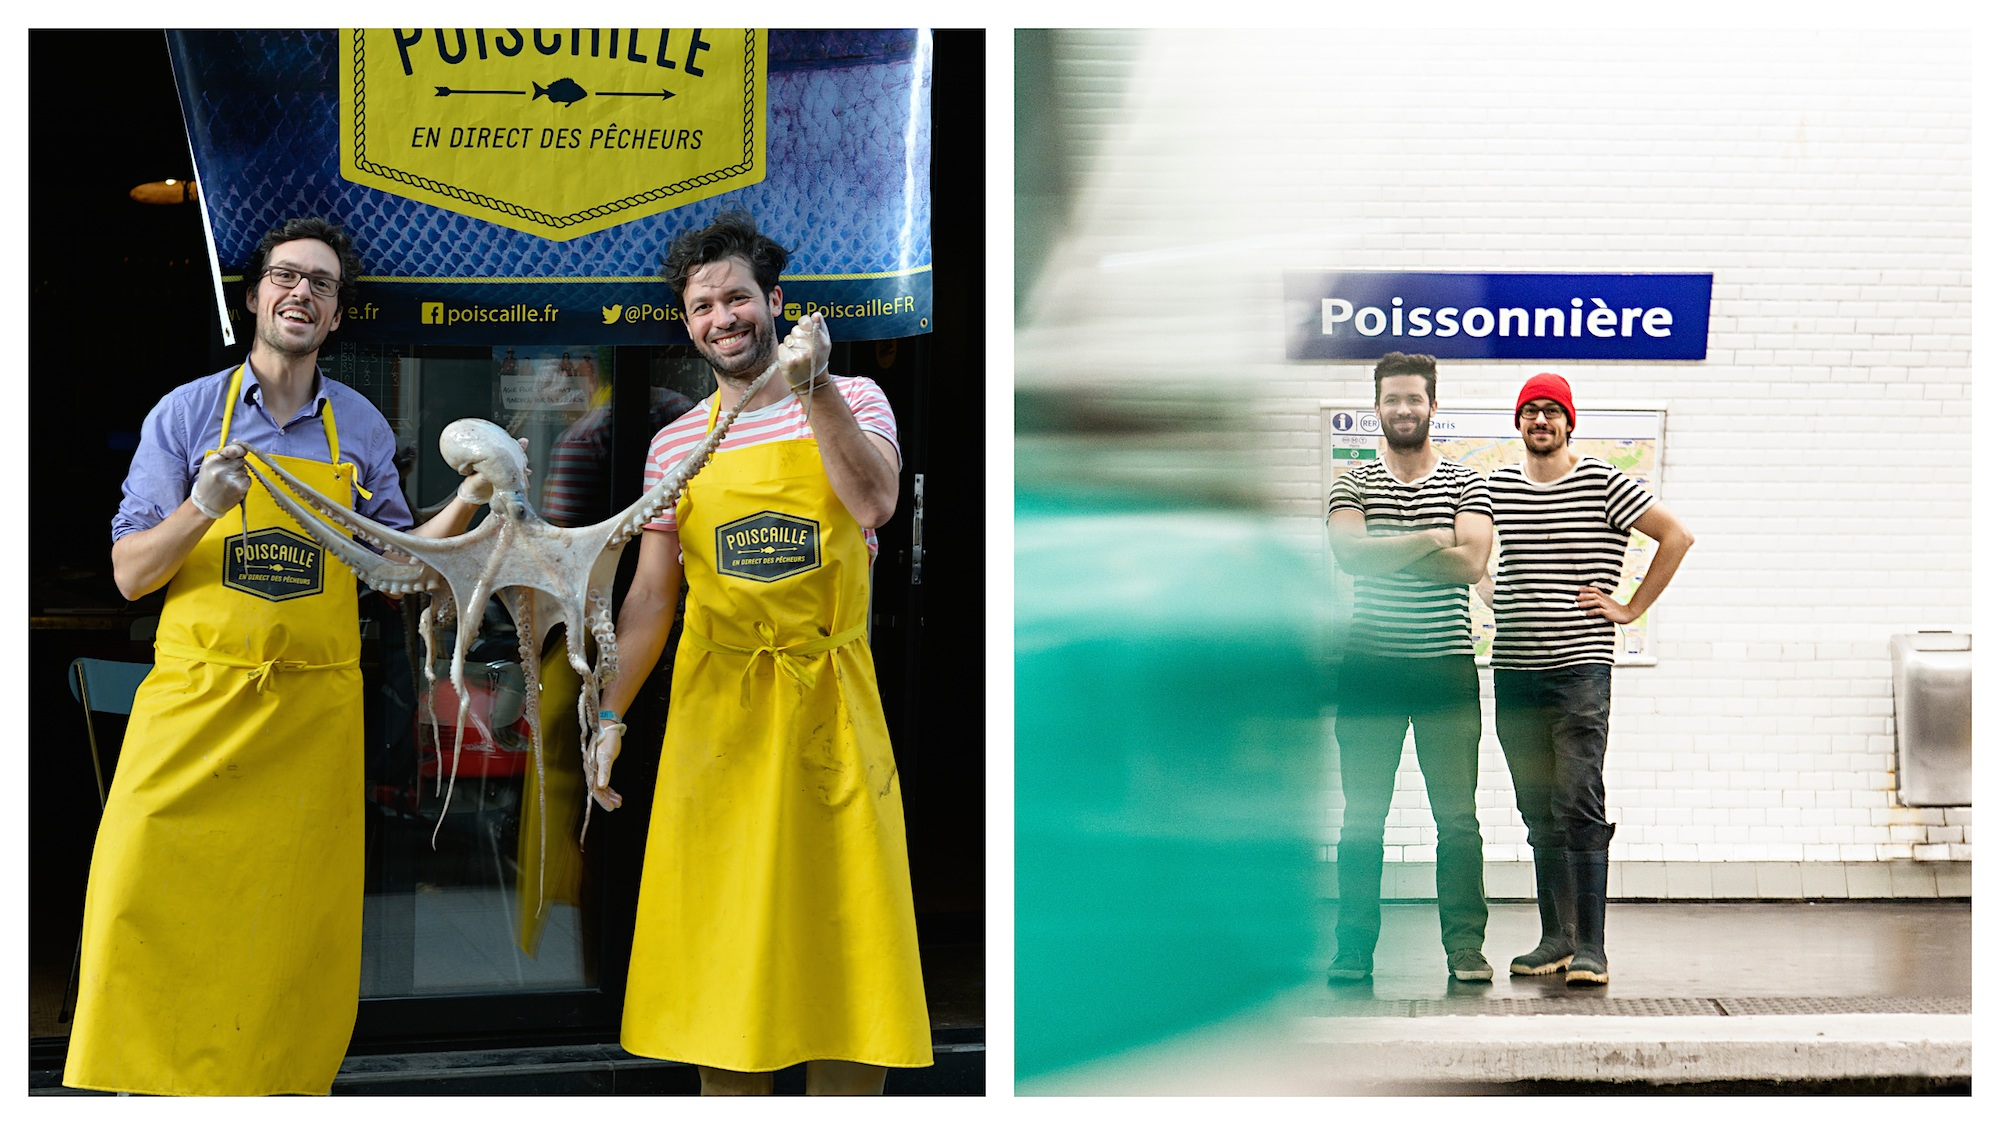 The founders of Poiscaille ethical seafood startup in France with an octopus (left). The Poiscaille Paris ethical fish startup at Poissonnière metro station in Paris, wearing matching stripy mariner t-shirts (right).